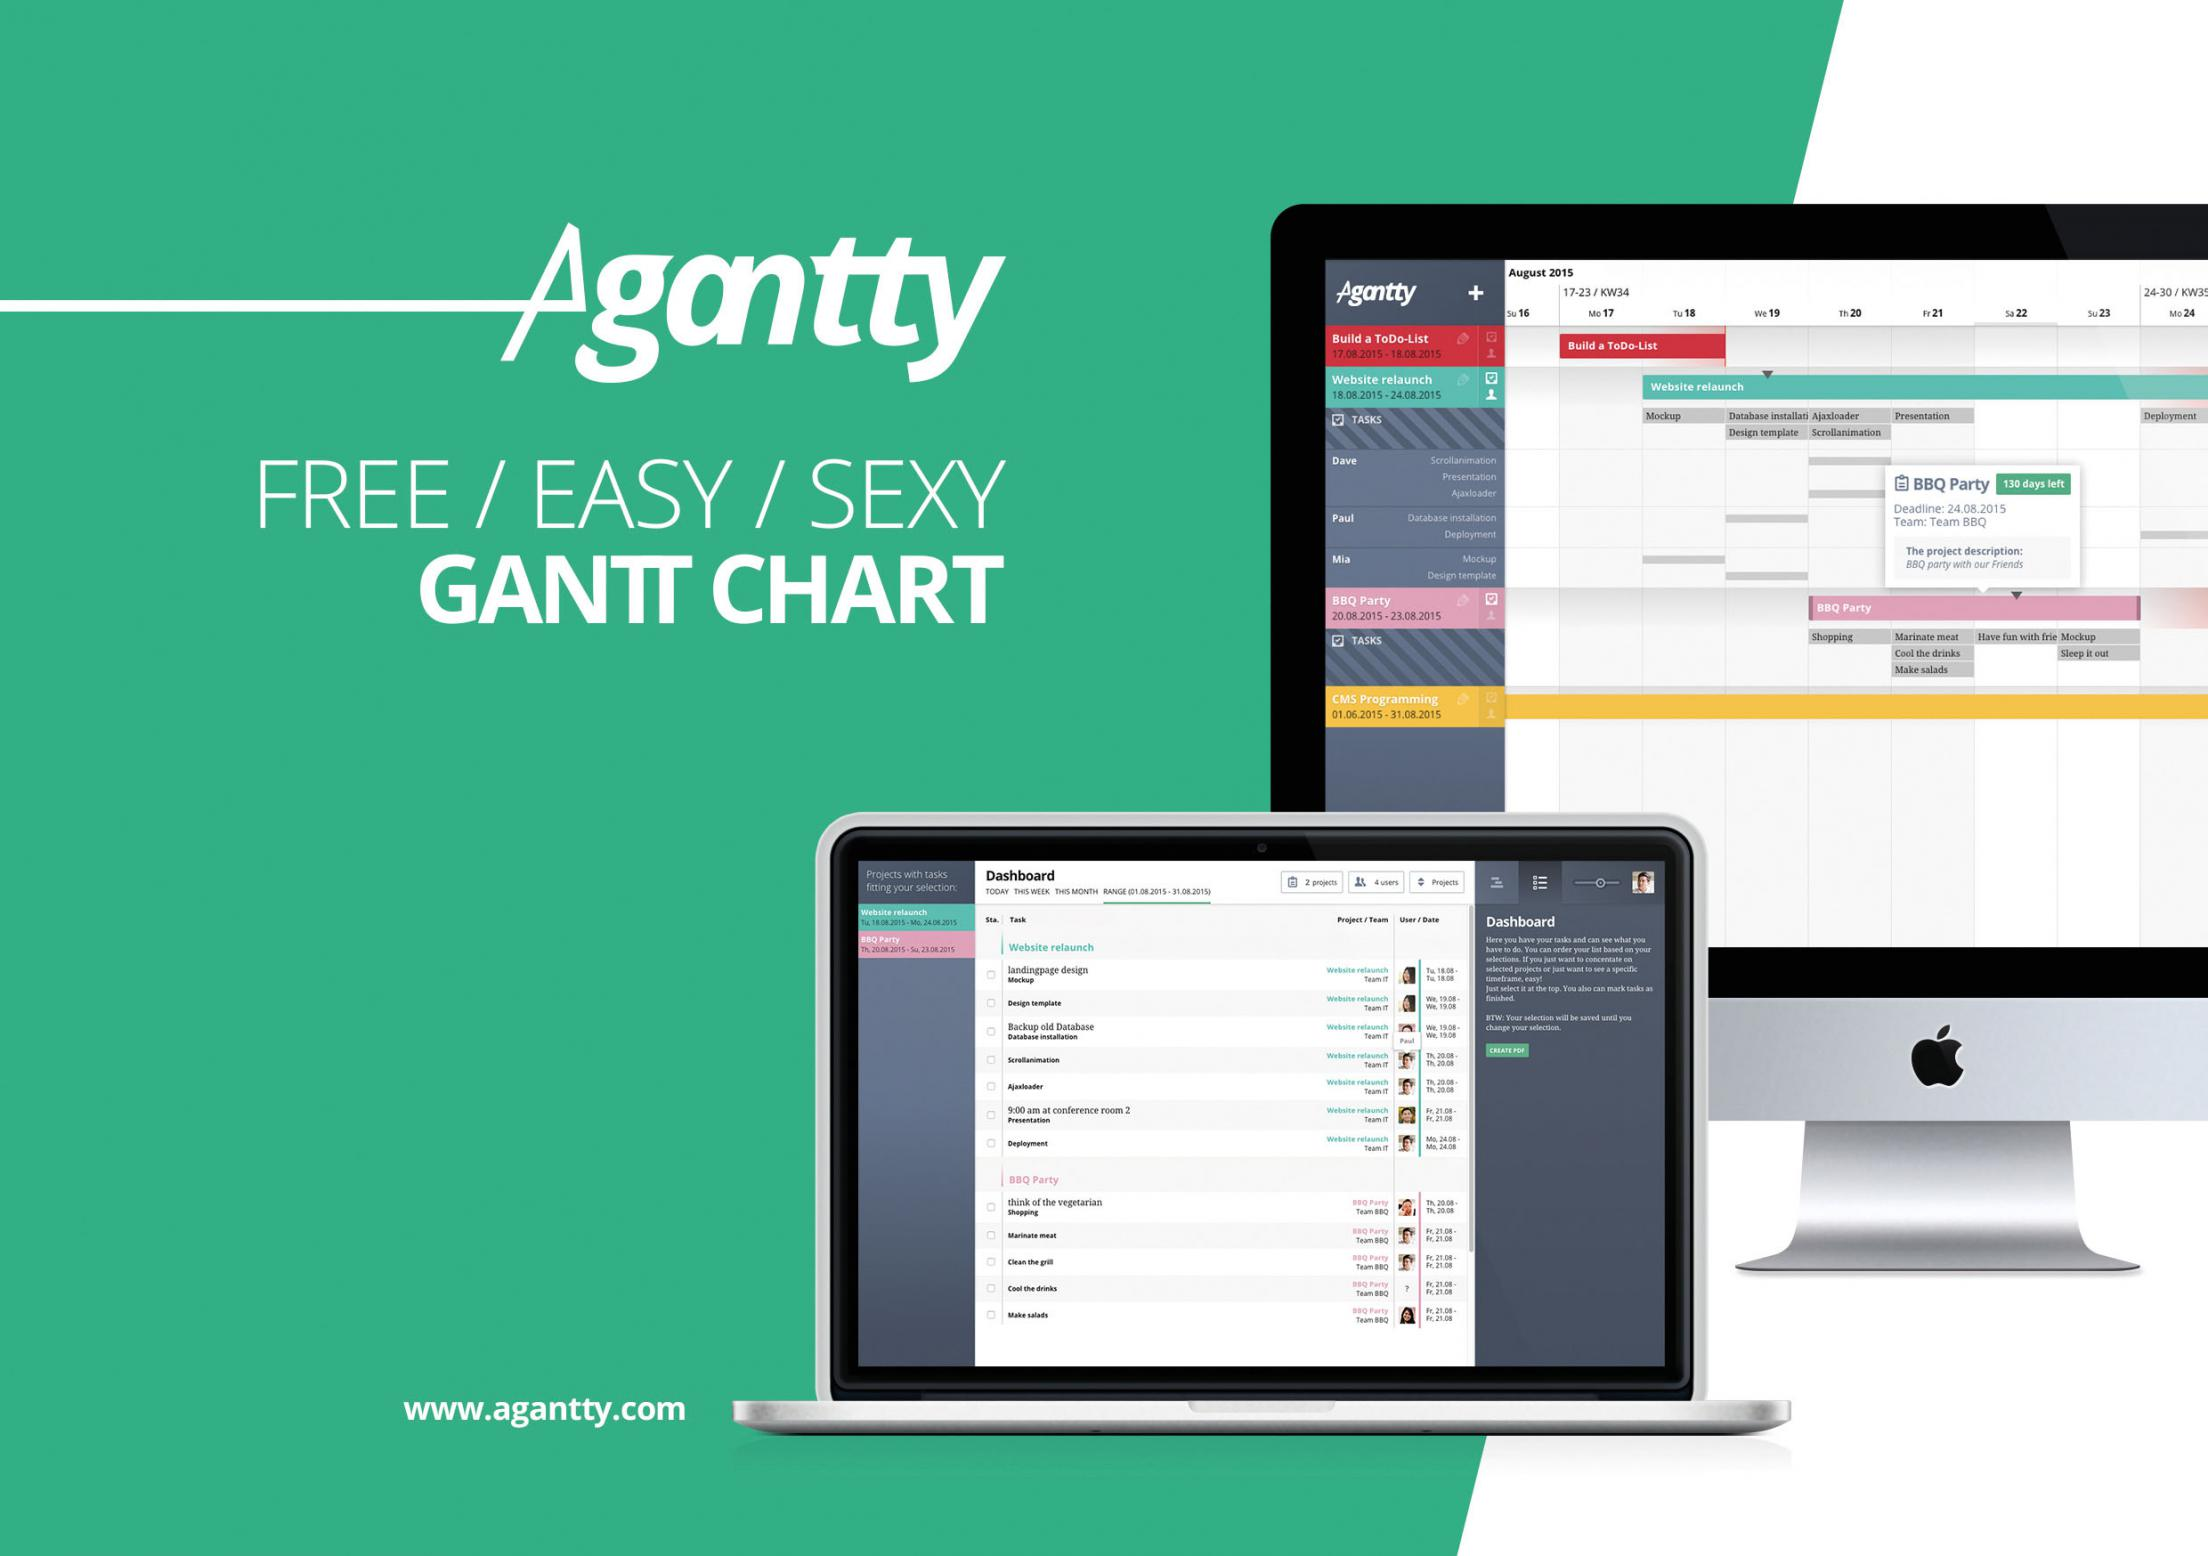 Agantty agantty - special mention web